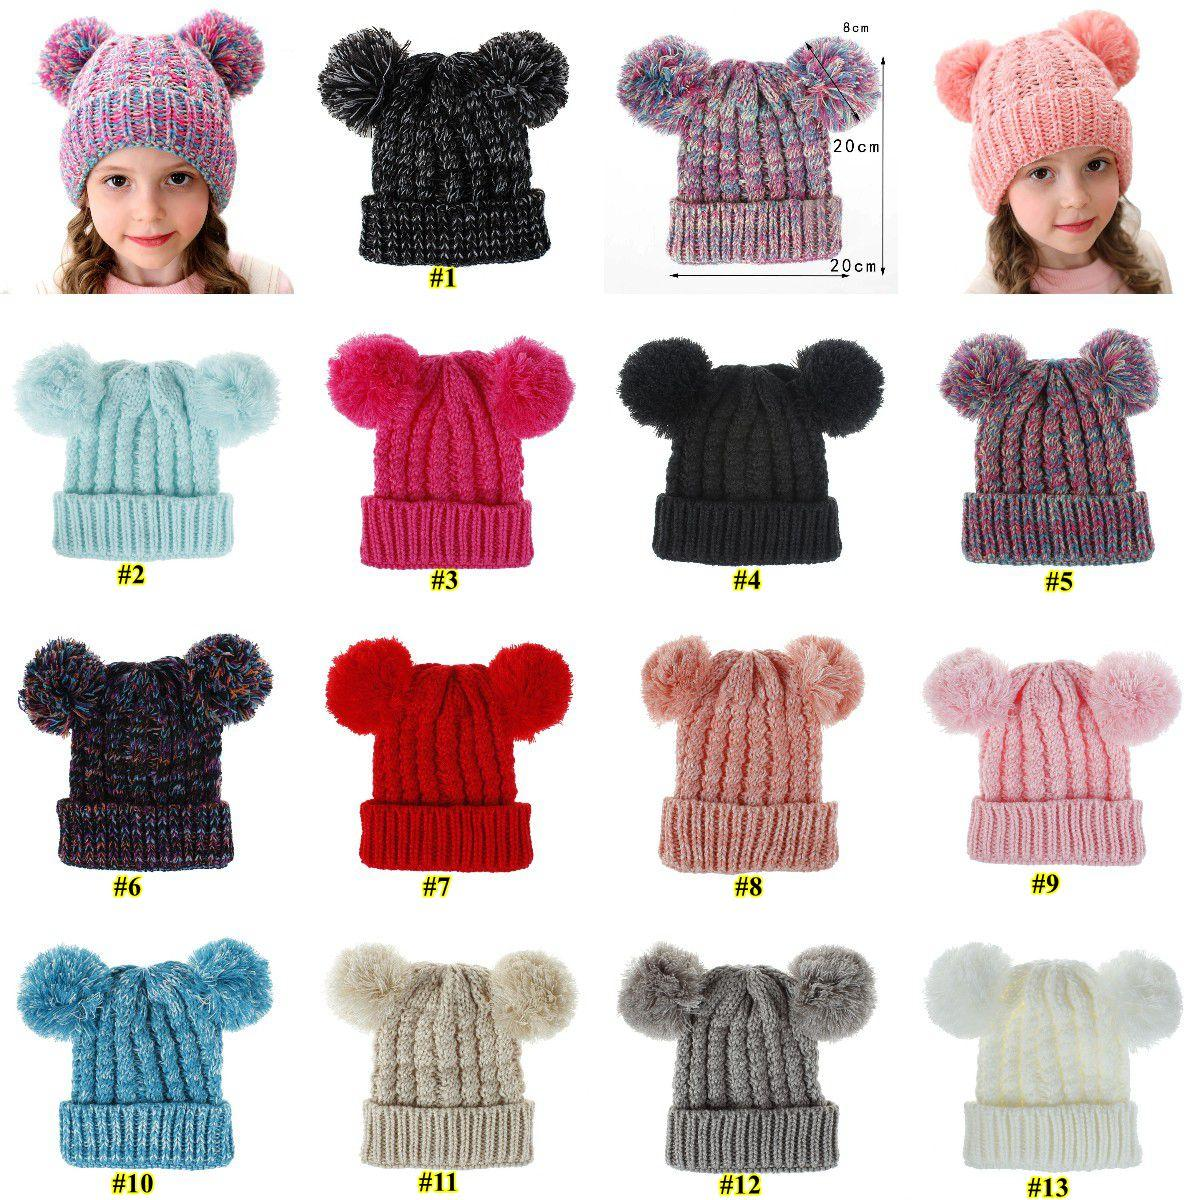 Kid Knit Crochet Beanies Hat Girls Soft Double Balls Winter Warm Hat 13 Colors Outdoor Baby Pompom Ski Caps GH530